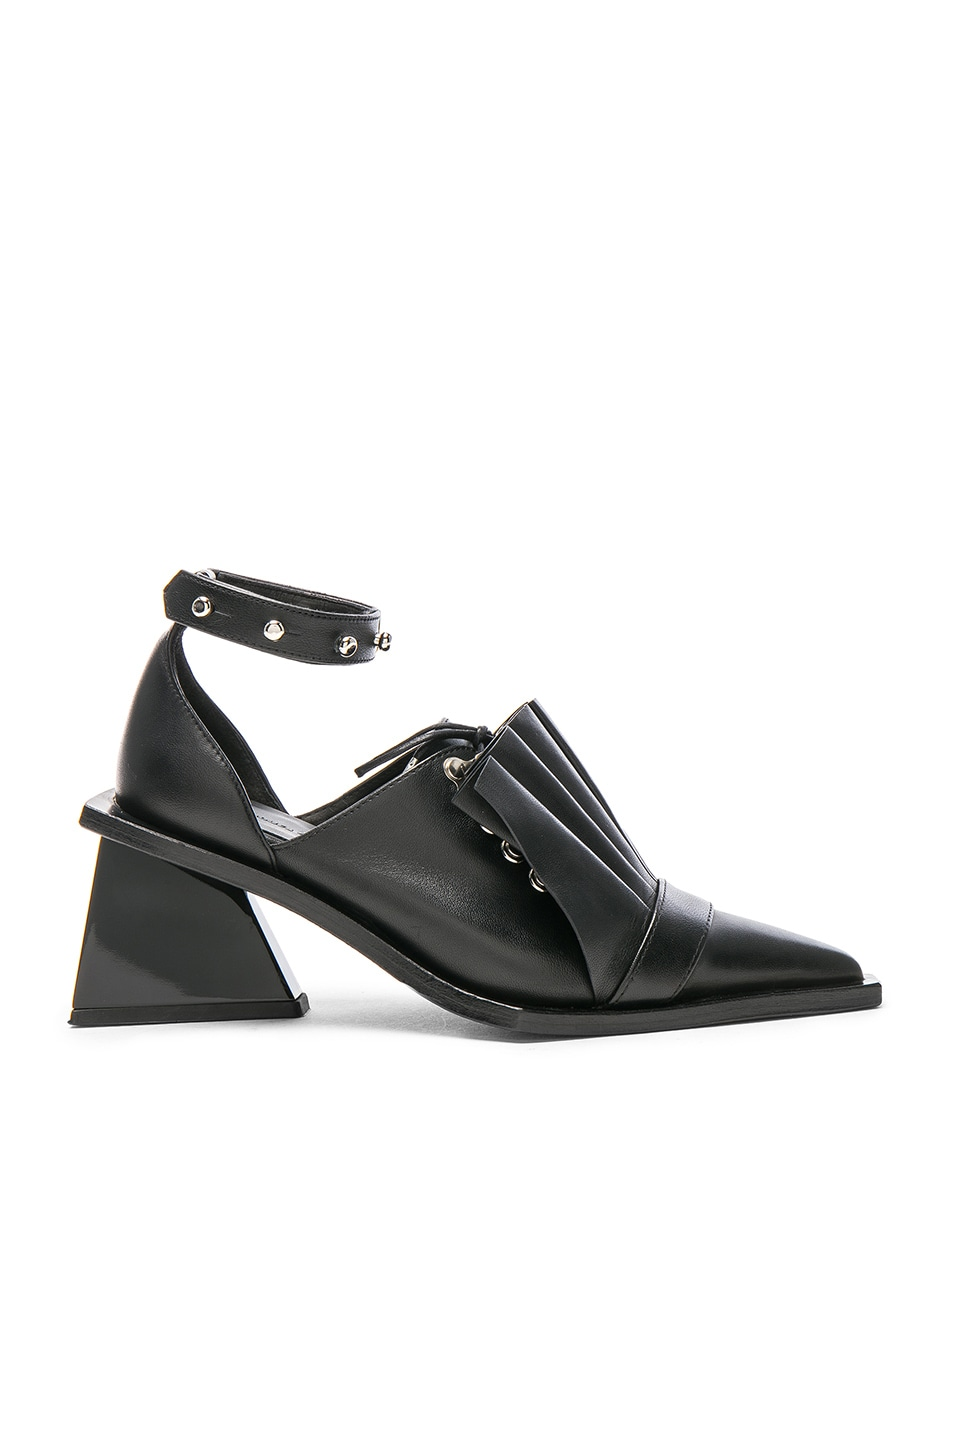 Image 1 of Marques ' Almeida Pointy Frill Lace Up Leather Shoes in Black